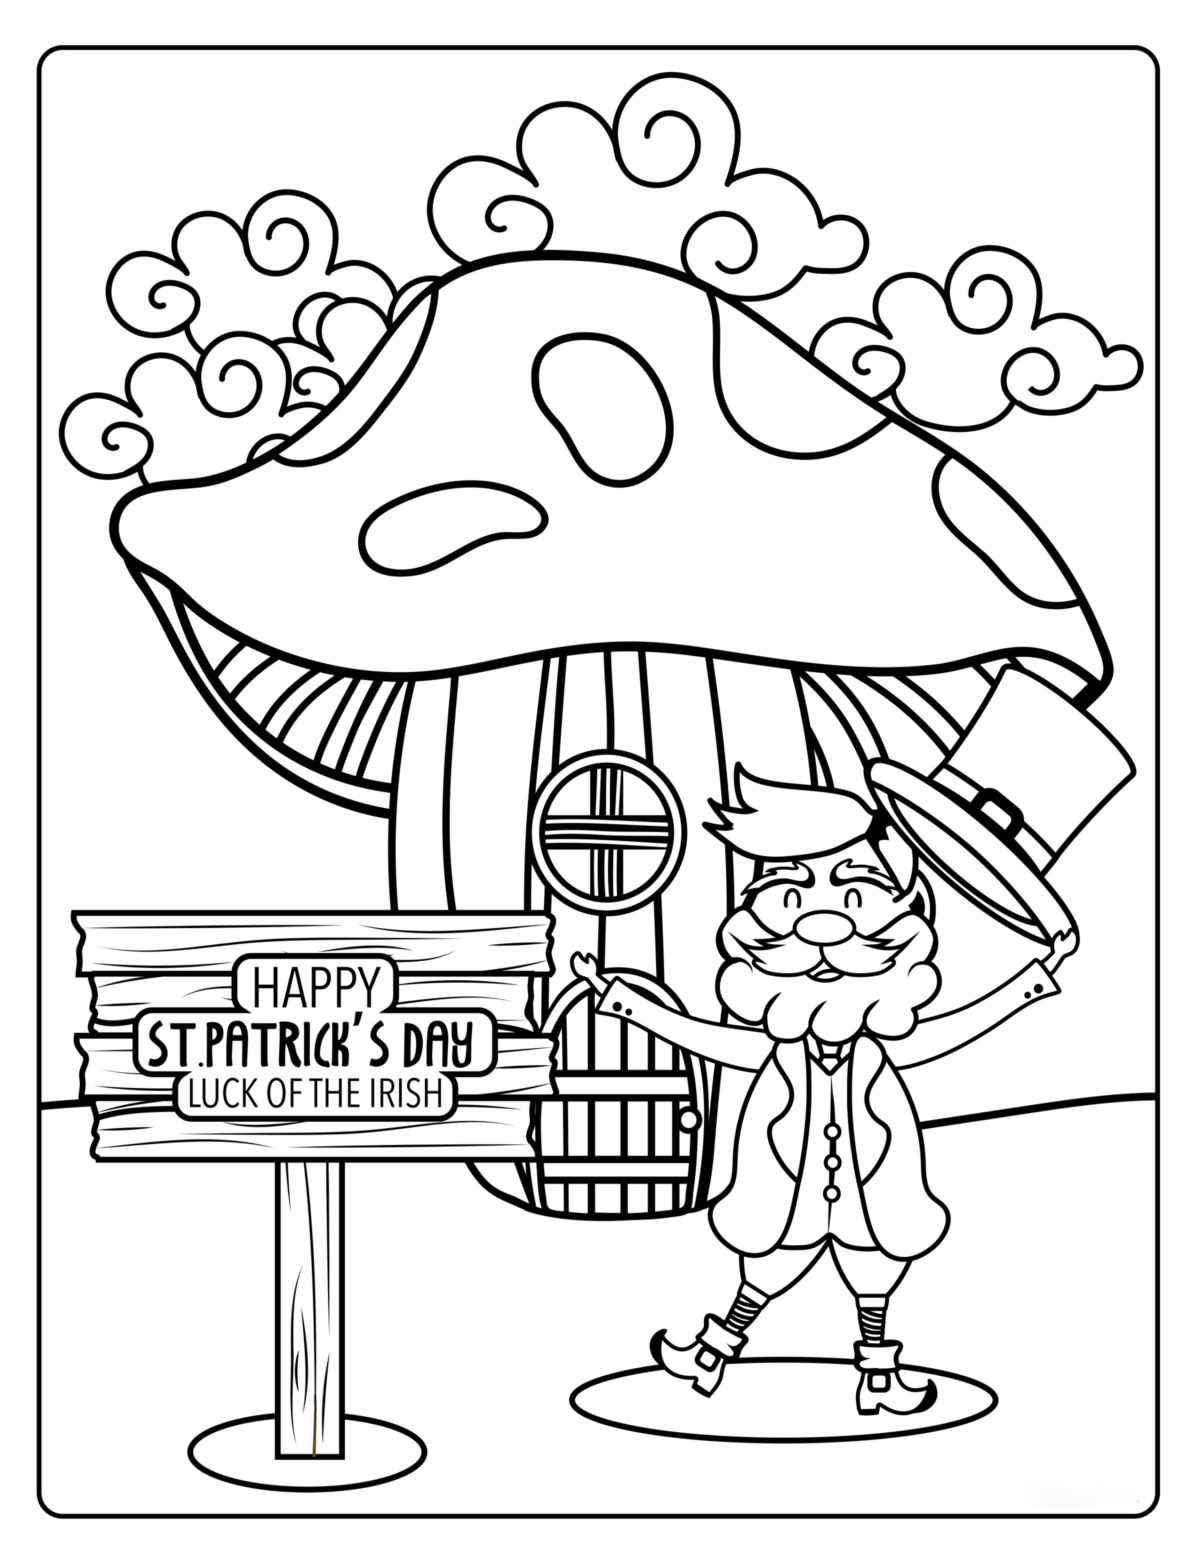 Whimsical St.Patrick day Coloring Page